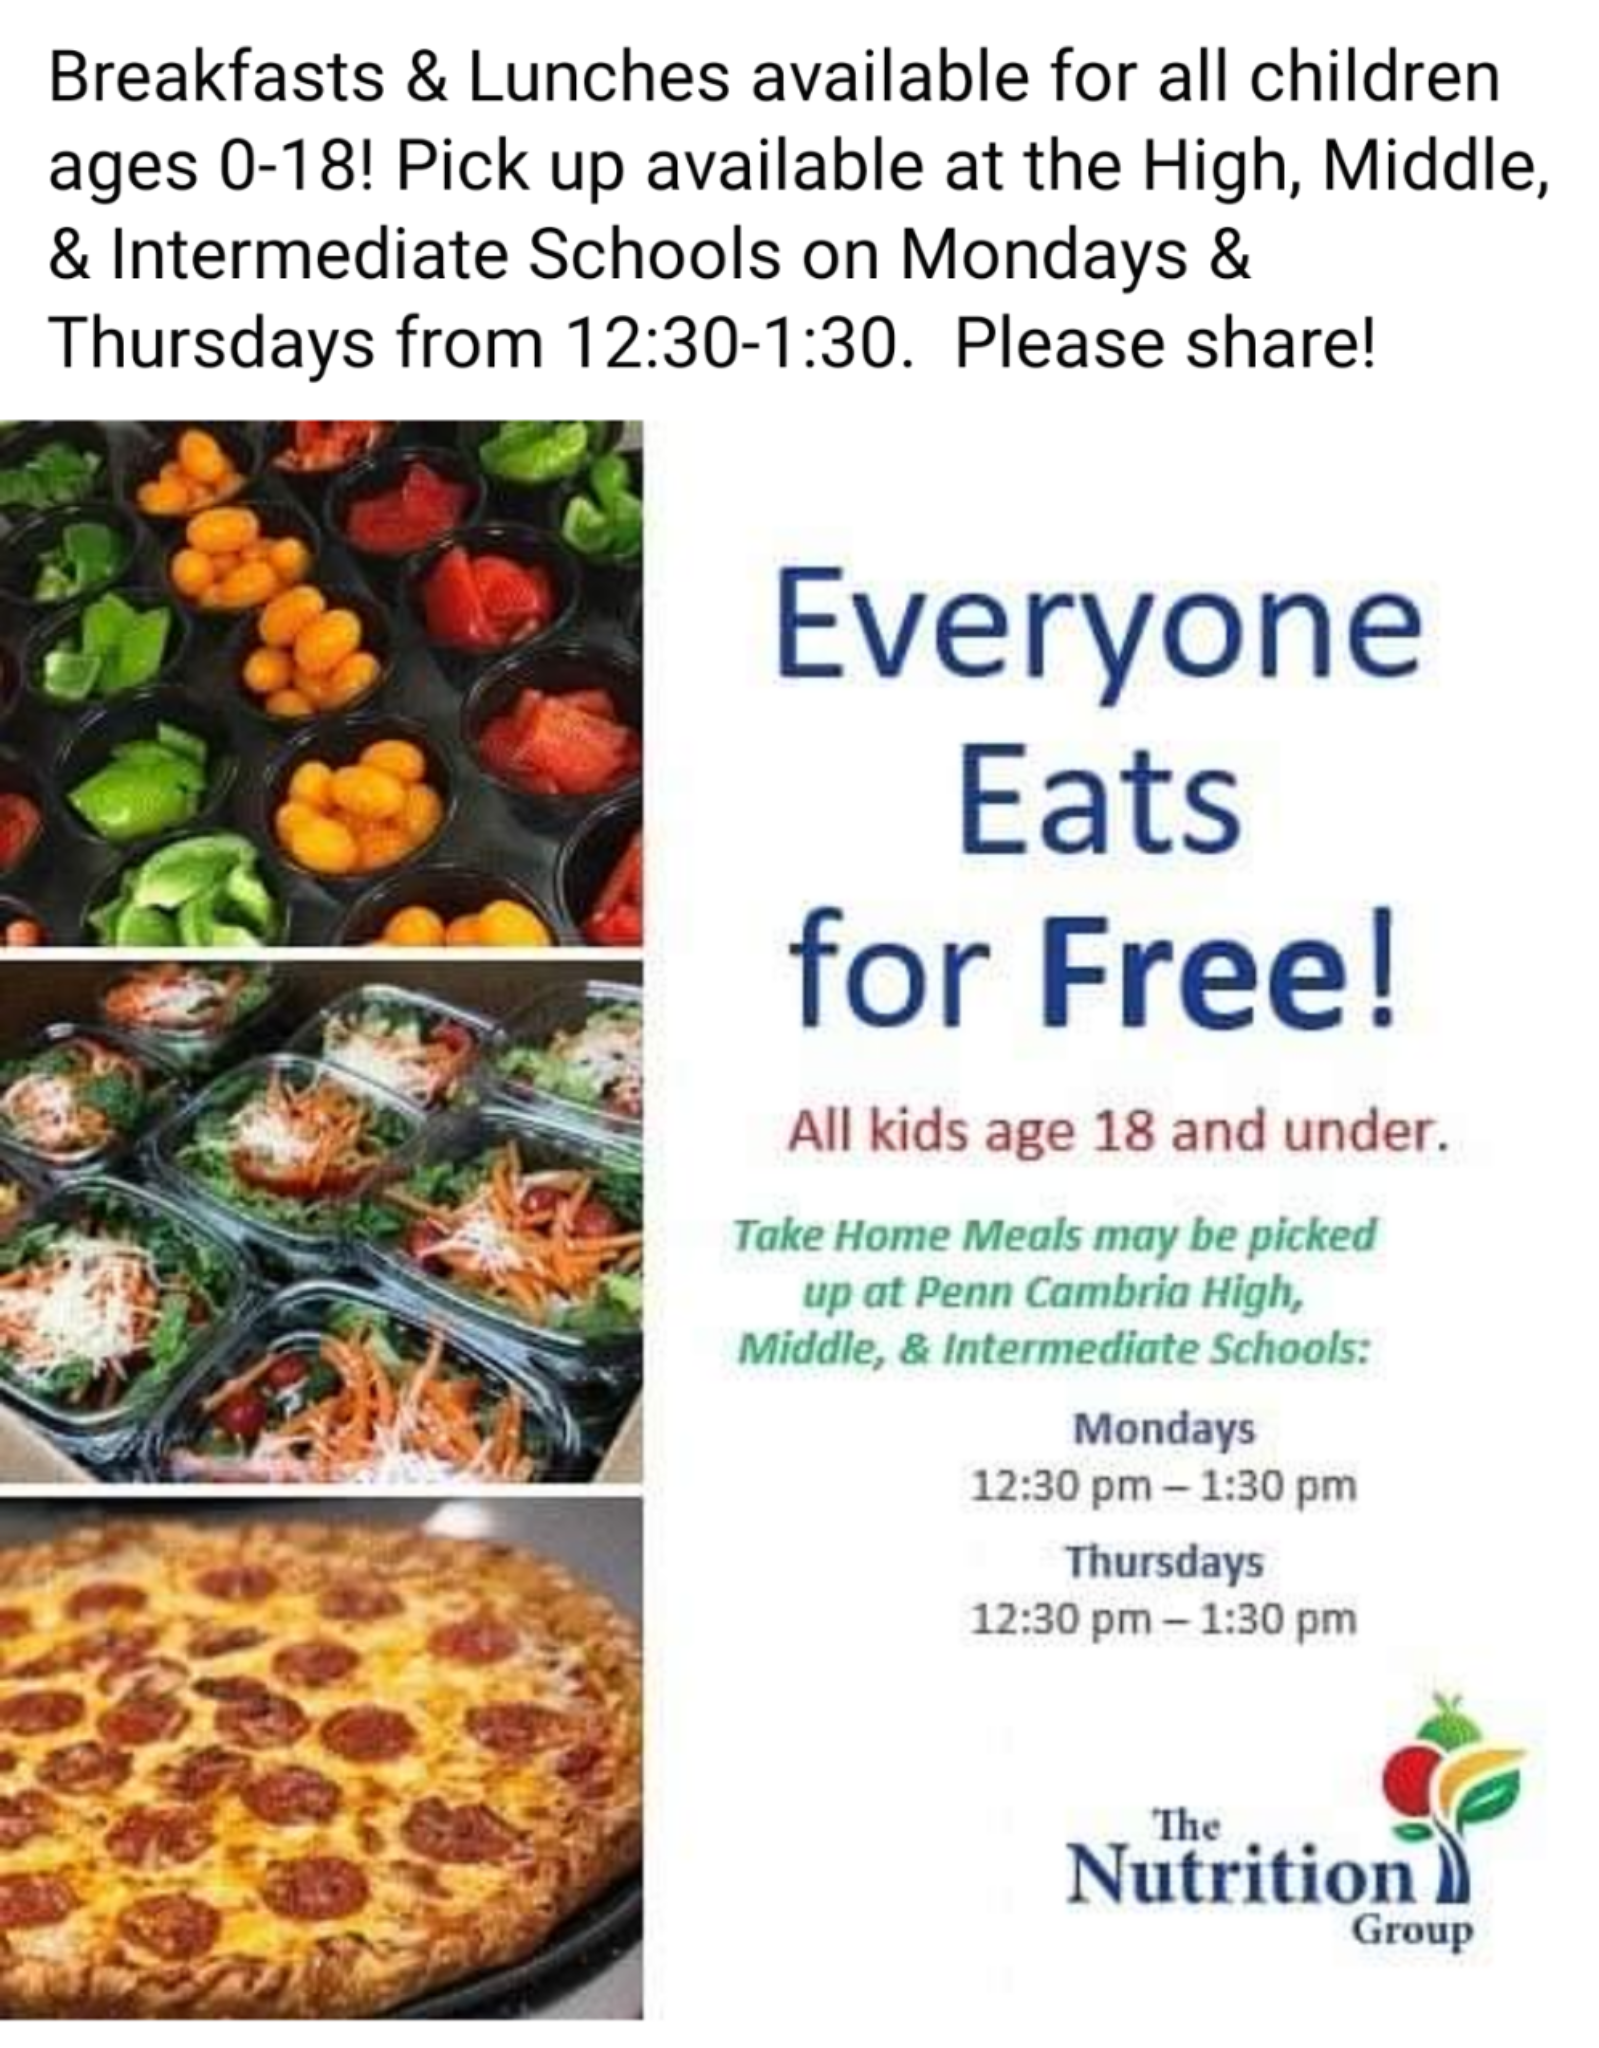 Free Meals for All Kids Age 18 and Under.